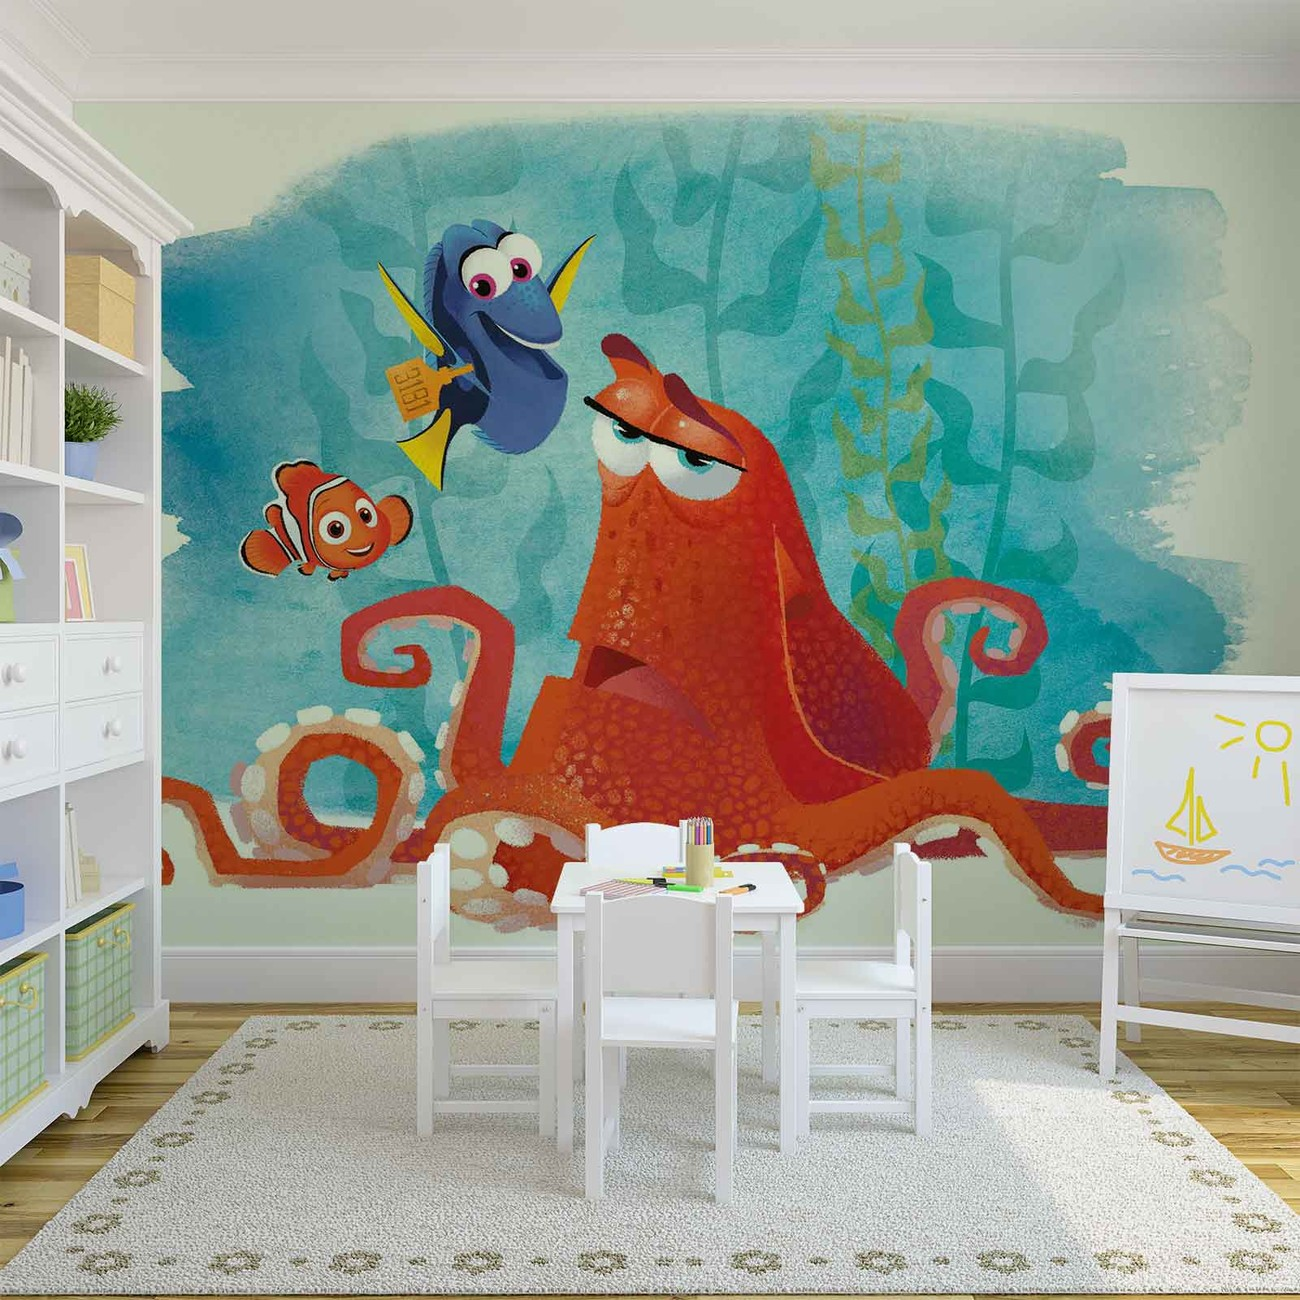 Disney finding nemo dory wall paper mural buy at europosters for Disney wall mural uk